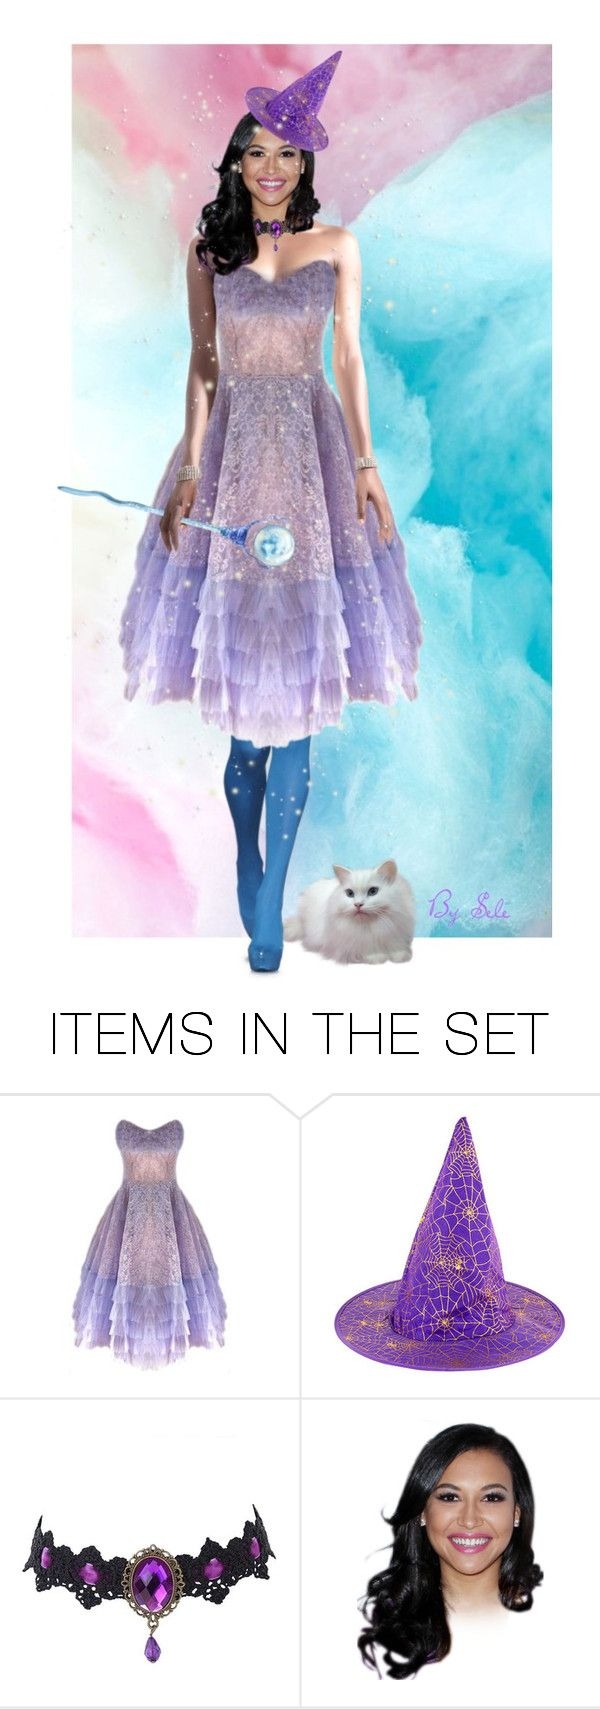 """"" PASTEL WITCH / SPRING WITCH "" - Magical Milly"" by selene-cinzia ❤ liked on Polyvore featuring art"